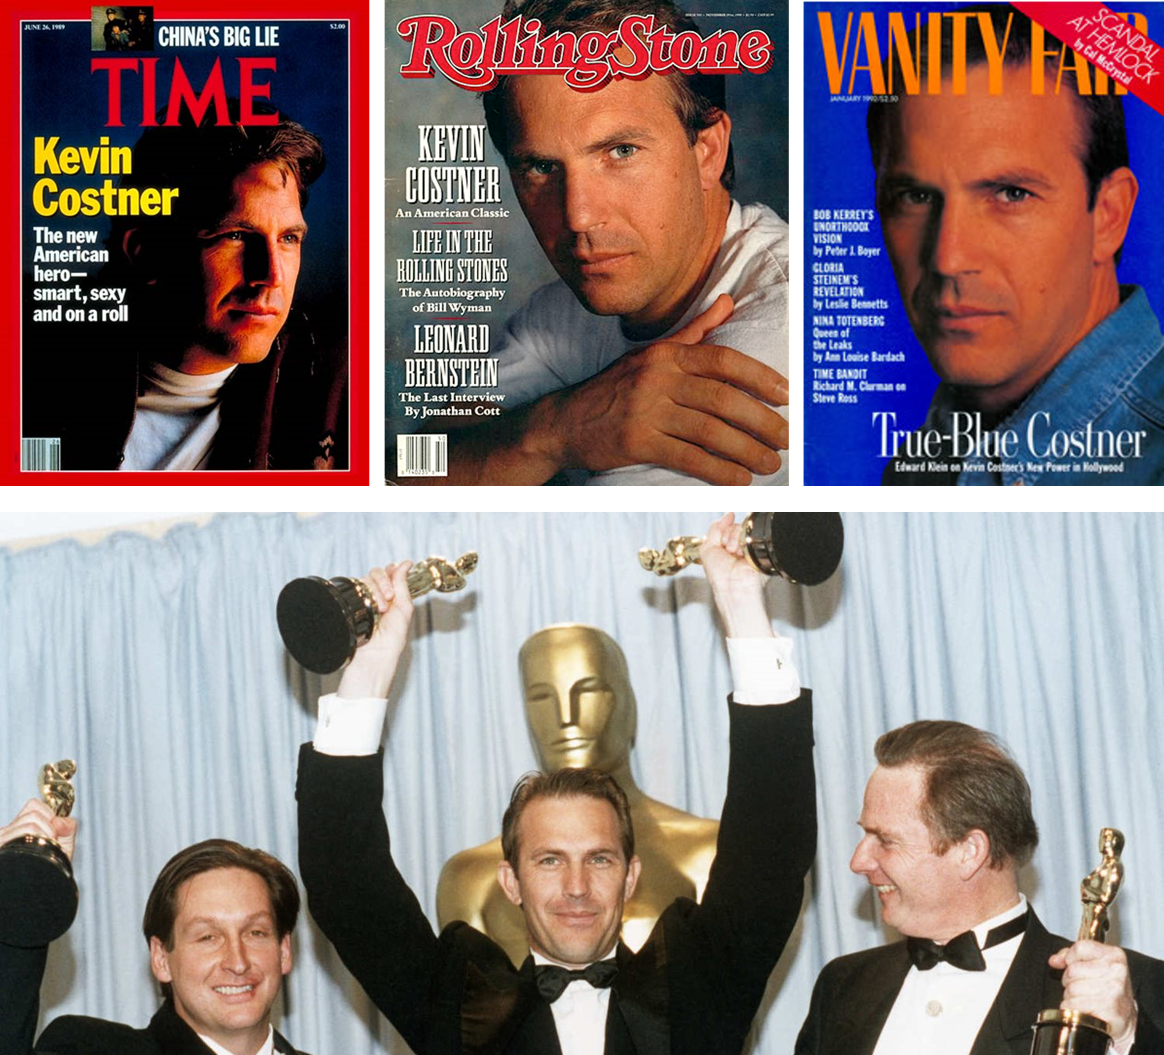 CURIOUS CASE OF KEVIN COSTNER — LIFE IS A CINEMA